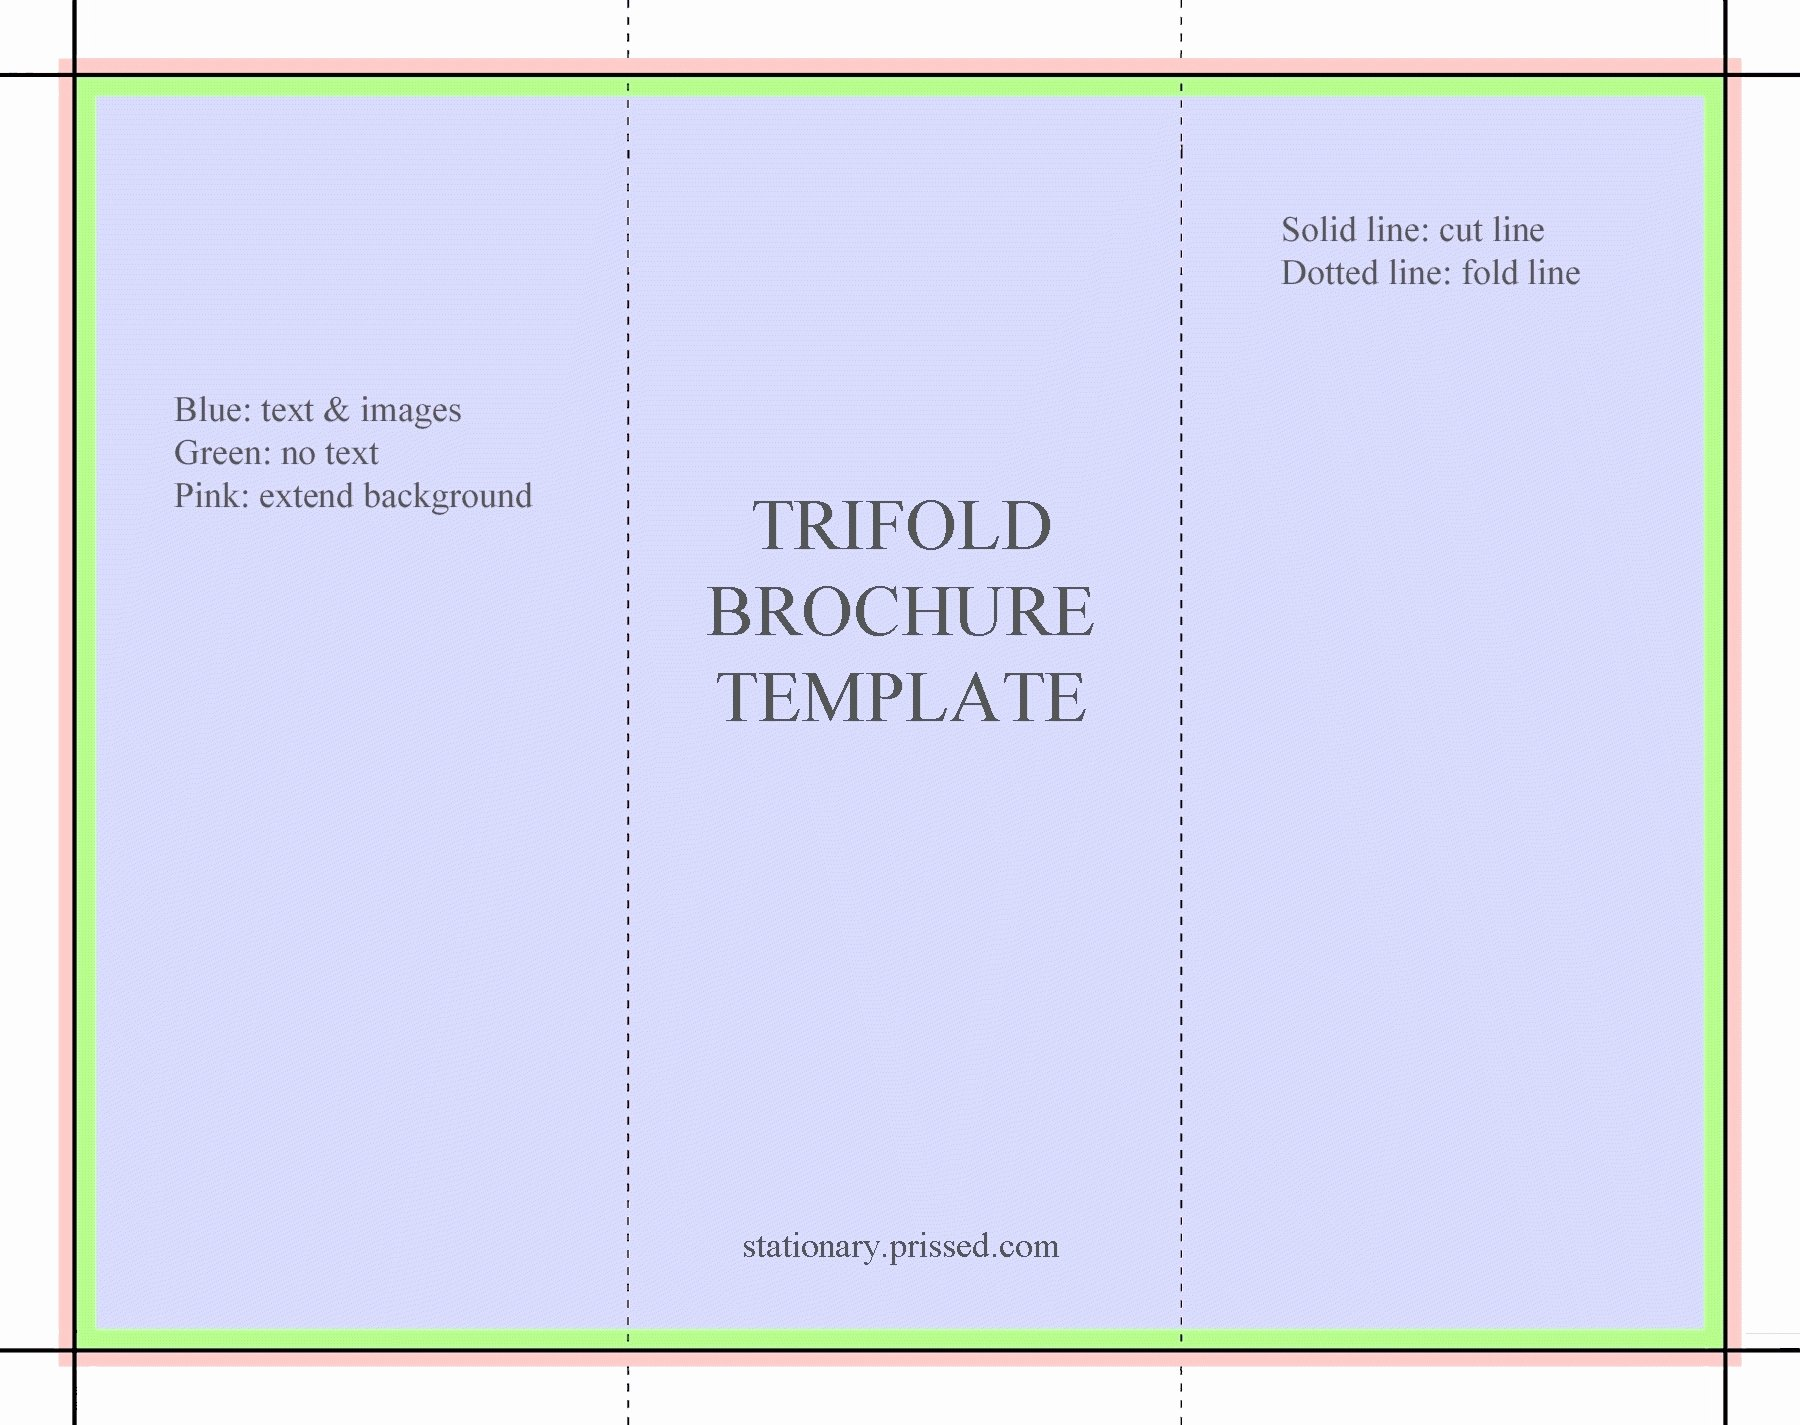 Postcard Template Google Docs Awesome 3×5 Index Card Template Google Docs 3×5 Index Card